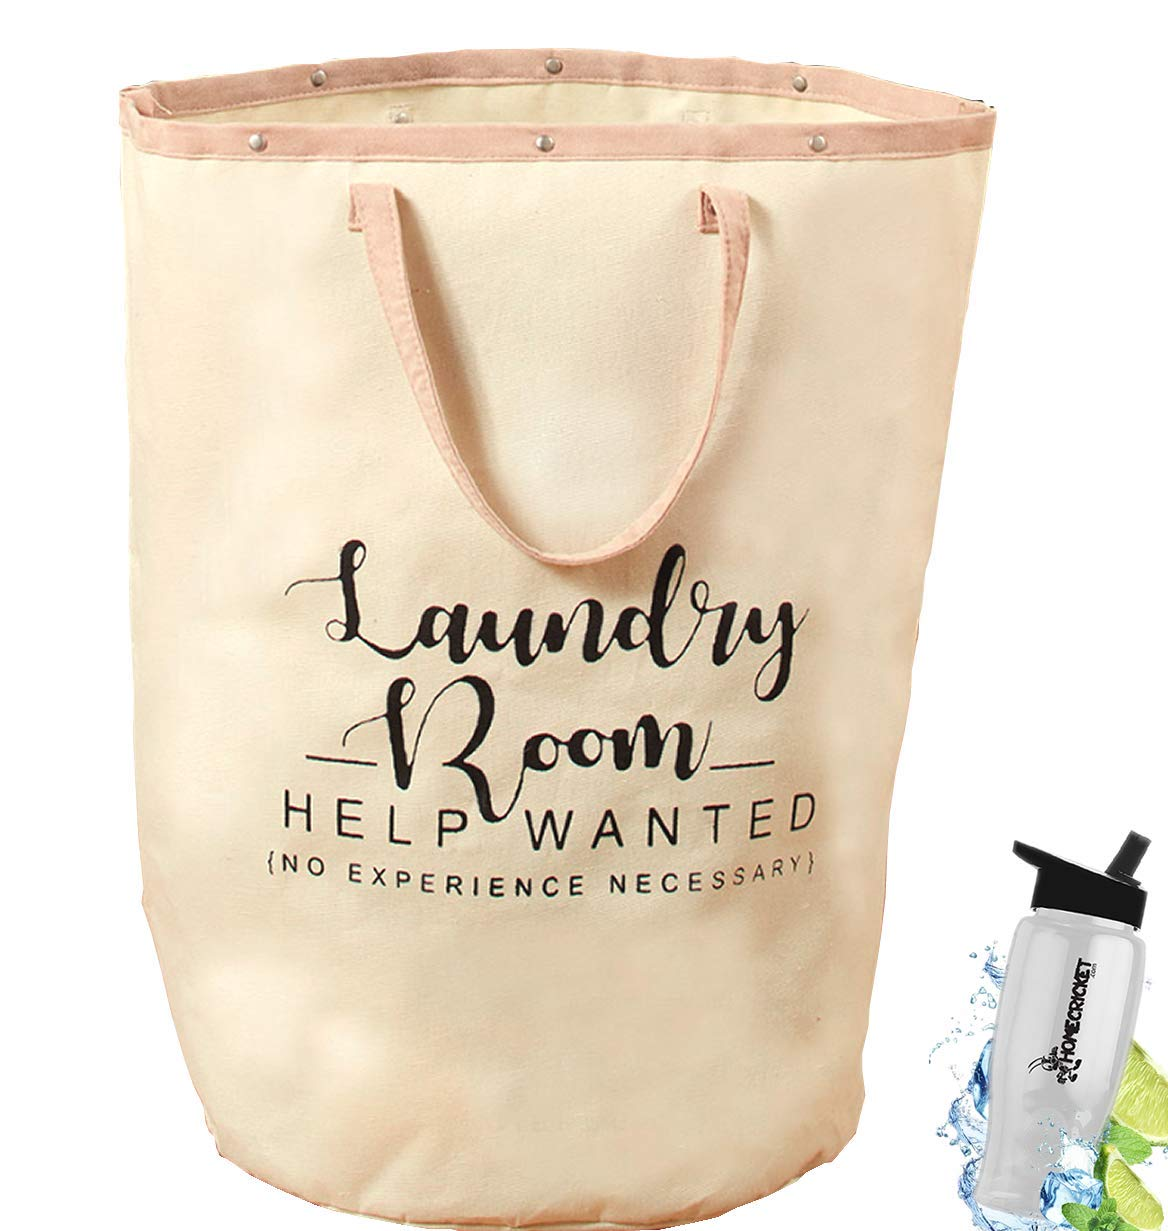 Gift Included- Jumbo Large Laundry Tote Bag With Handles For Laundry Room or Storage Cream + FREE Bonus Water Bottle by Home Cricket